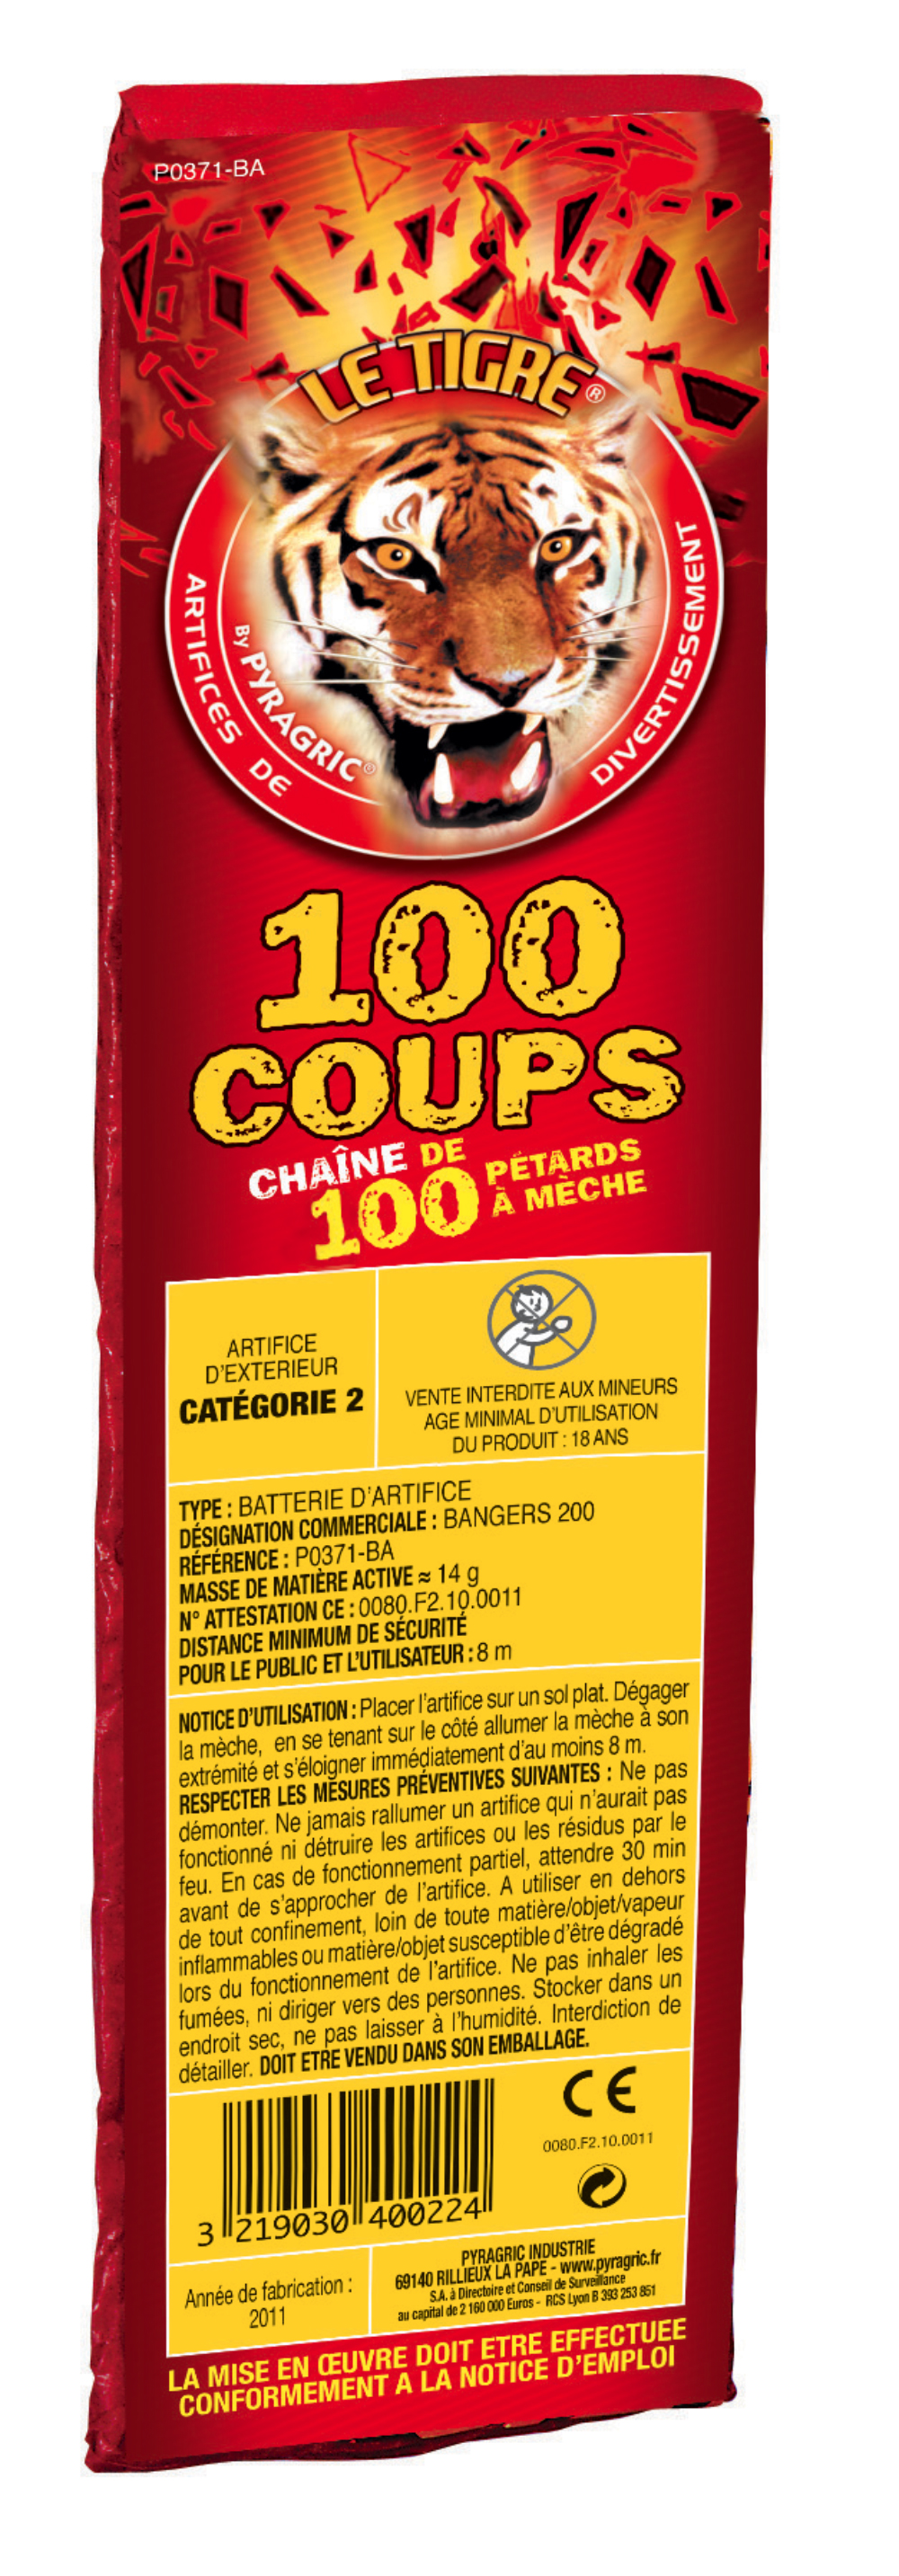 P040022-100-coups